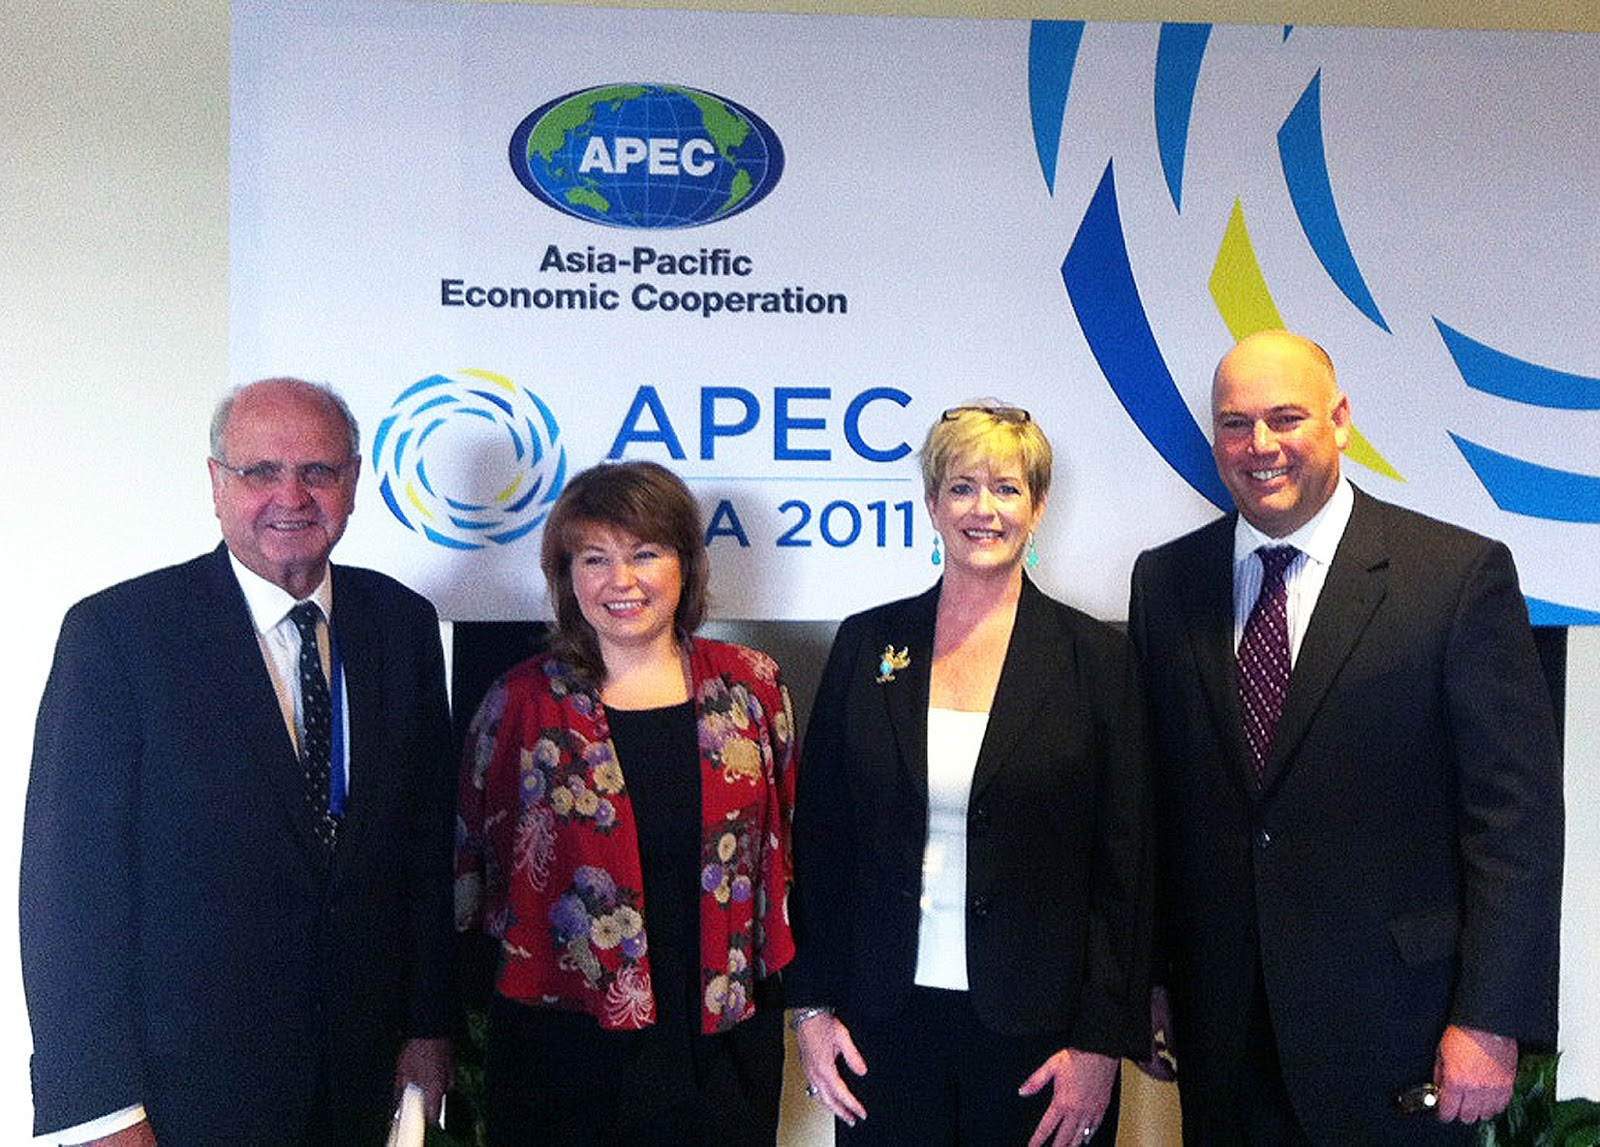 Left to Right: Michael Moore, New Zealand Ambassador to the U.S.; Sirma Karapeeva, New Zealand Ministry of Primary Industries; Julia Doherty, Senior Director, U.S. Office of Trade Representative and 2012 APEC Sub-Committee on Standards and Conformance chair; and Robert P. (Bobby) Koch, President and CEO of Wine Institute.